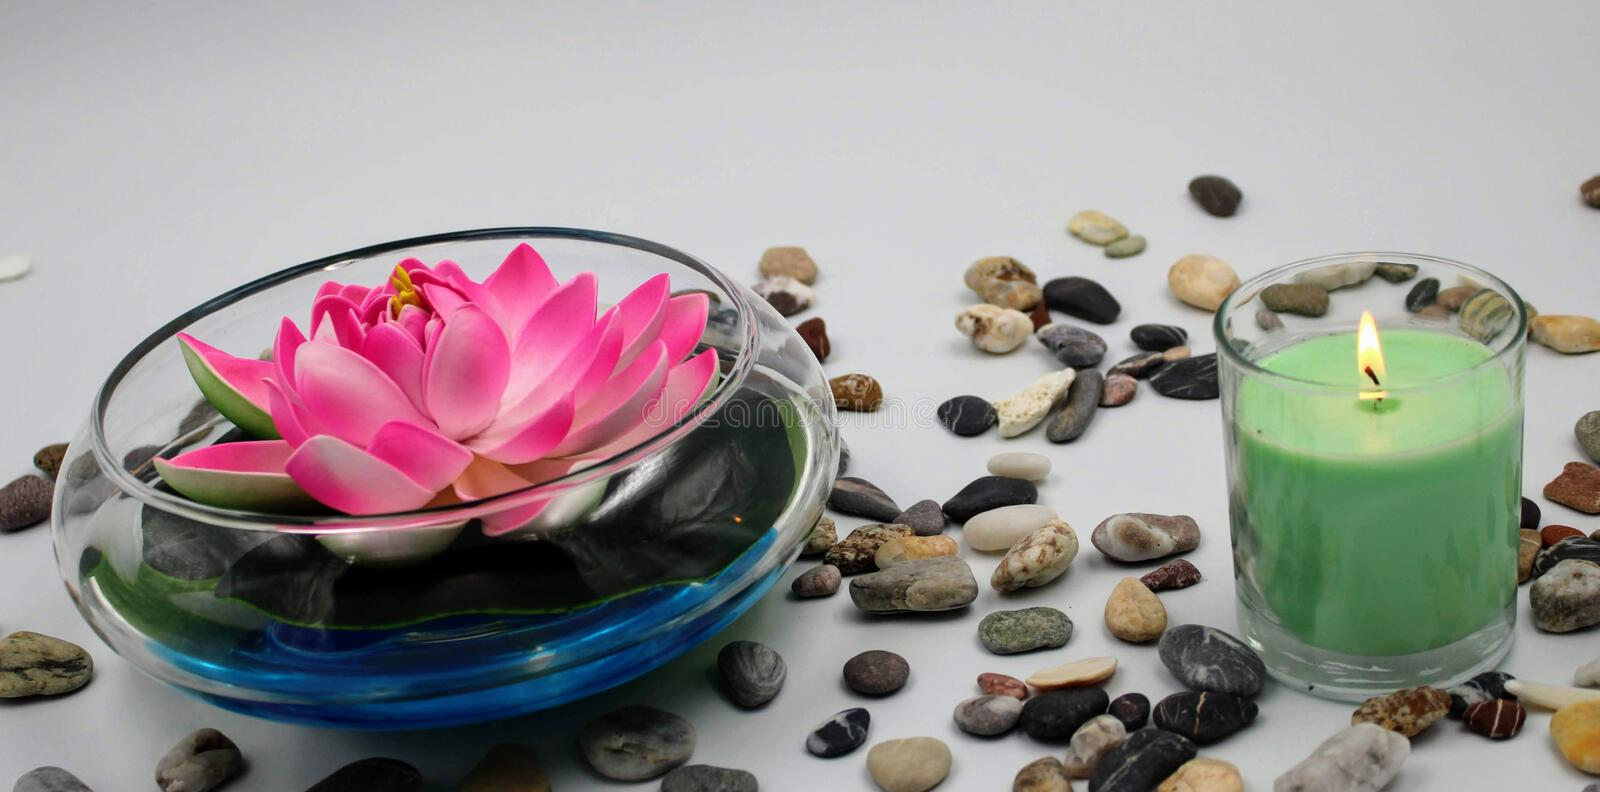 Bowl with rose lily stock photo